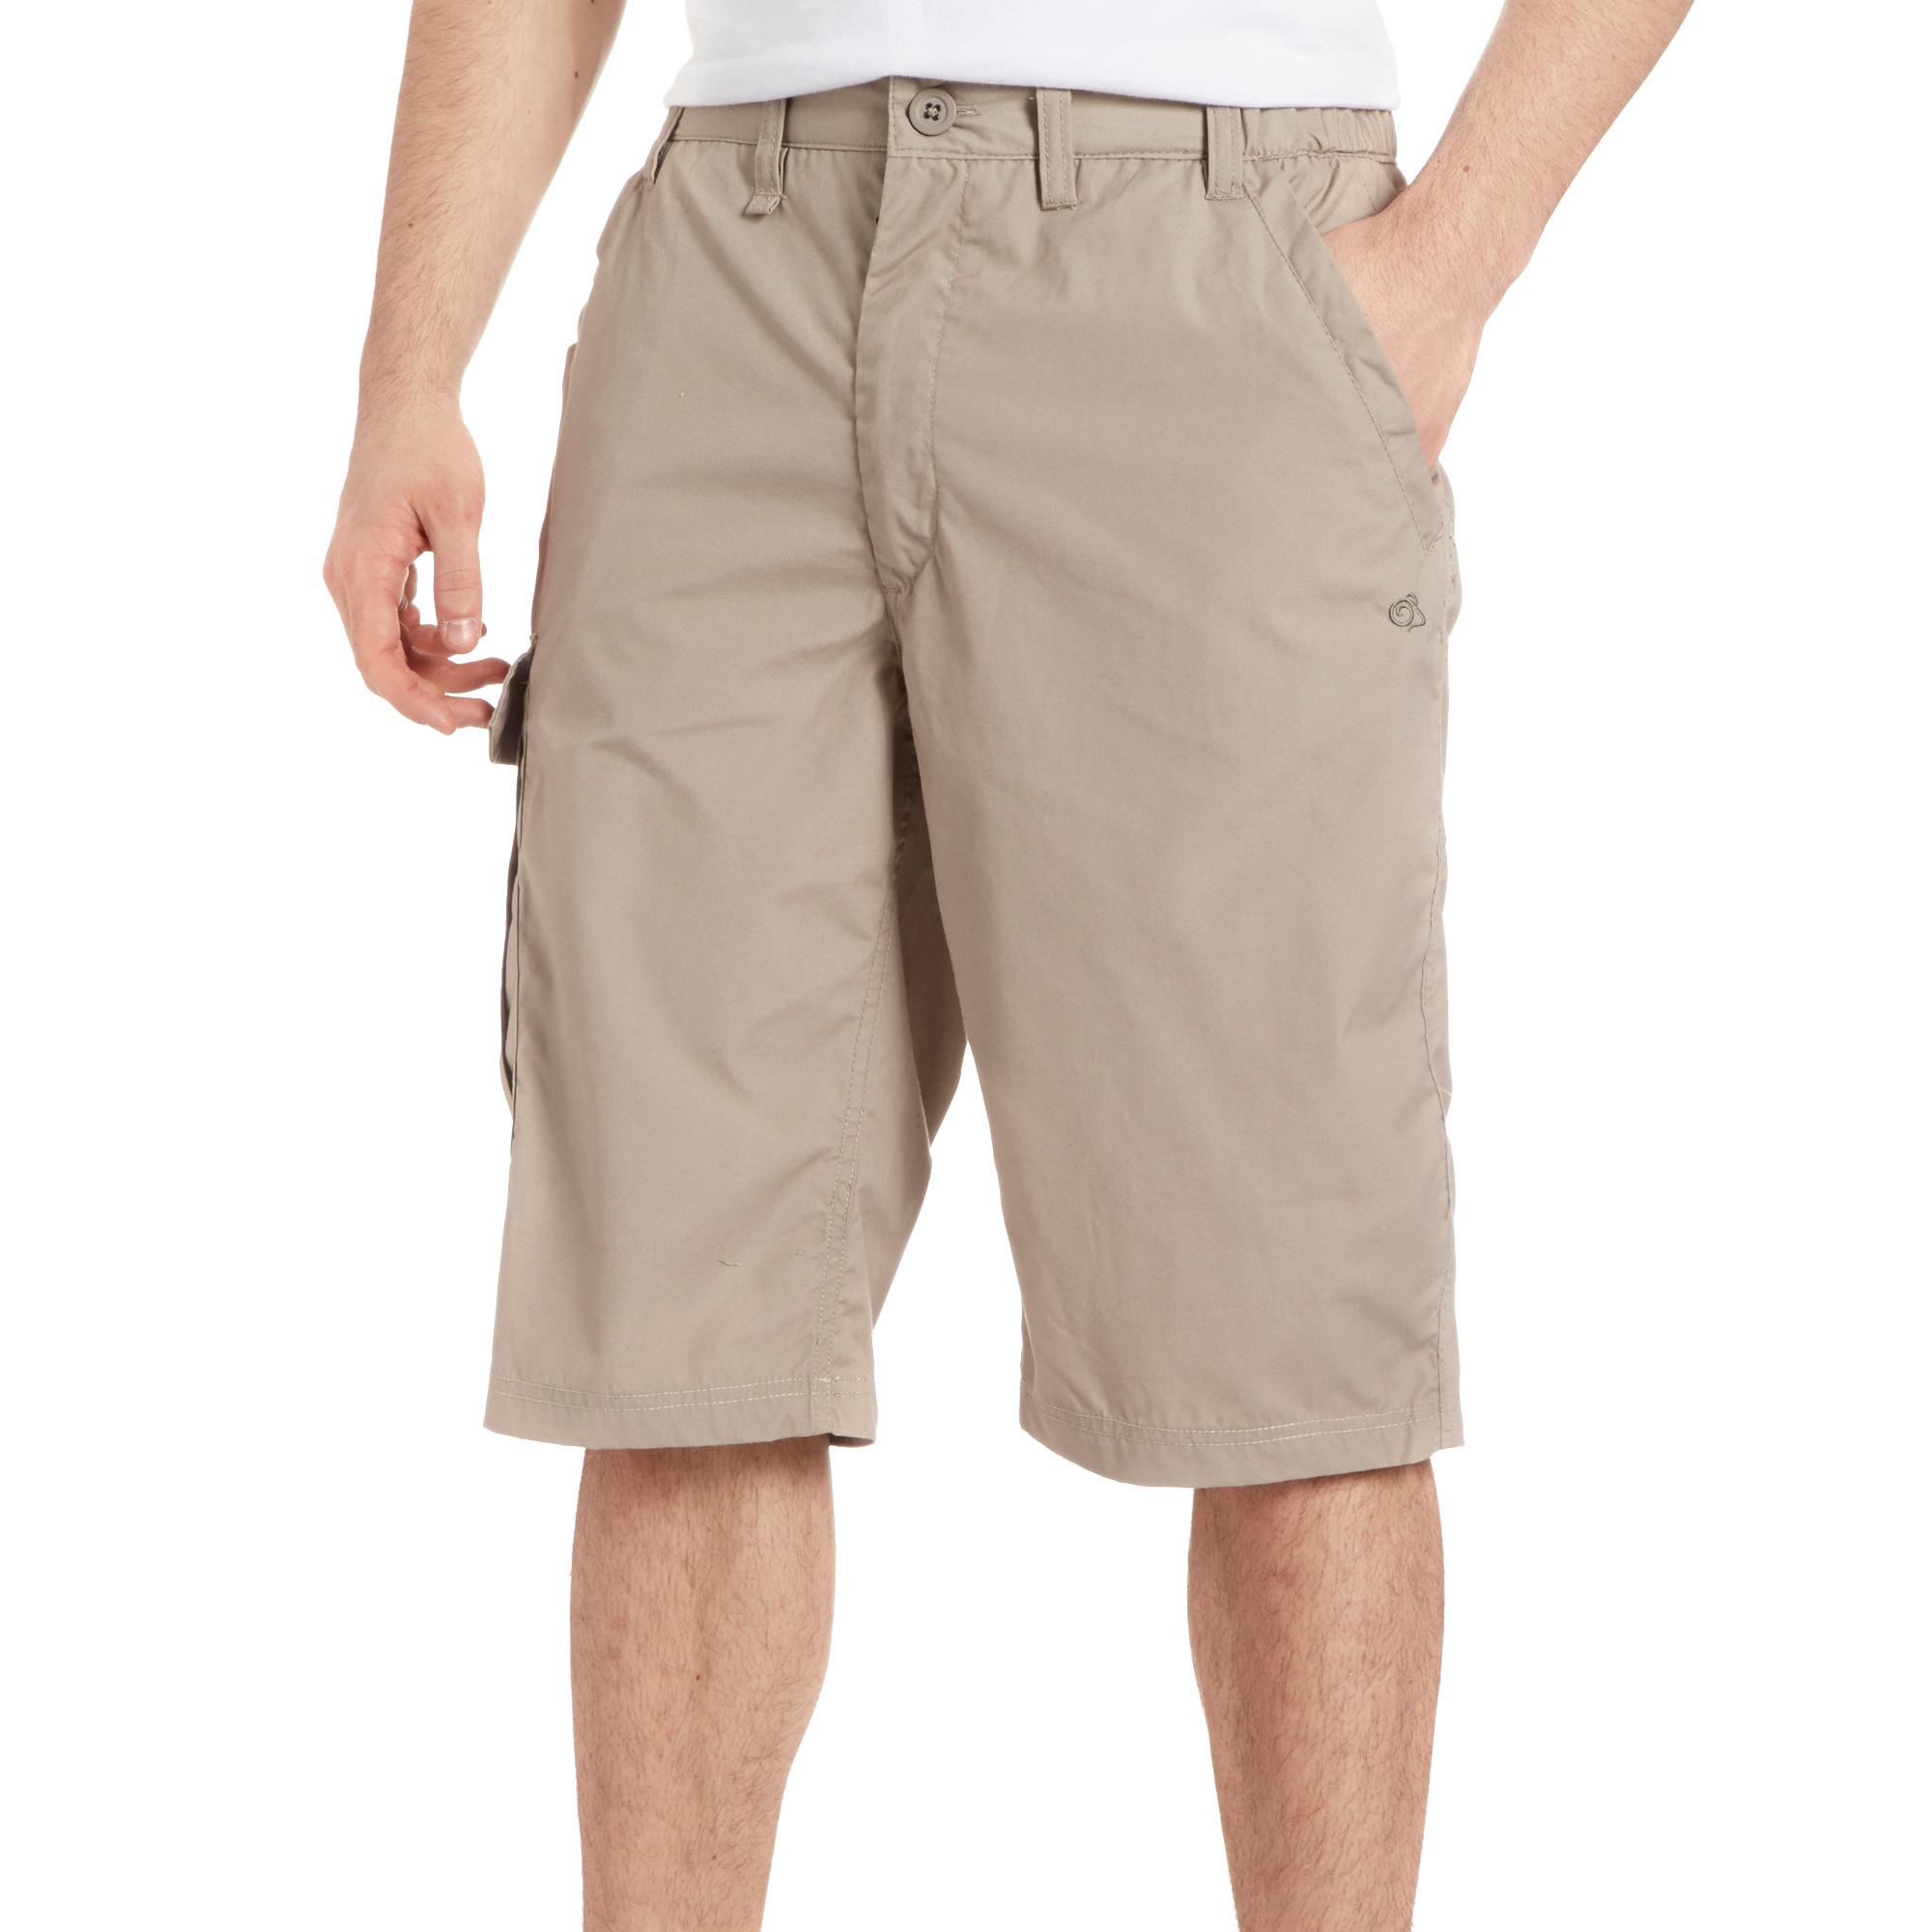 Craghoppers Mens Kiwi Long Shorts Beige